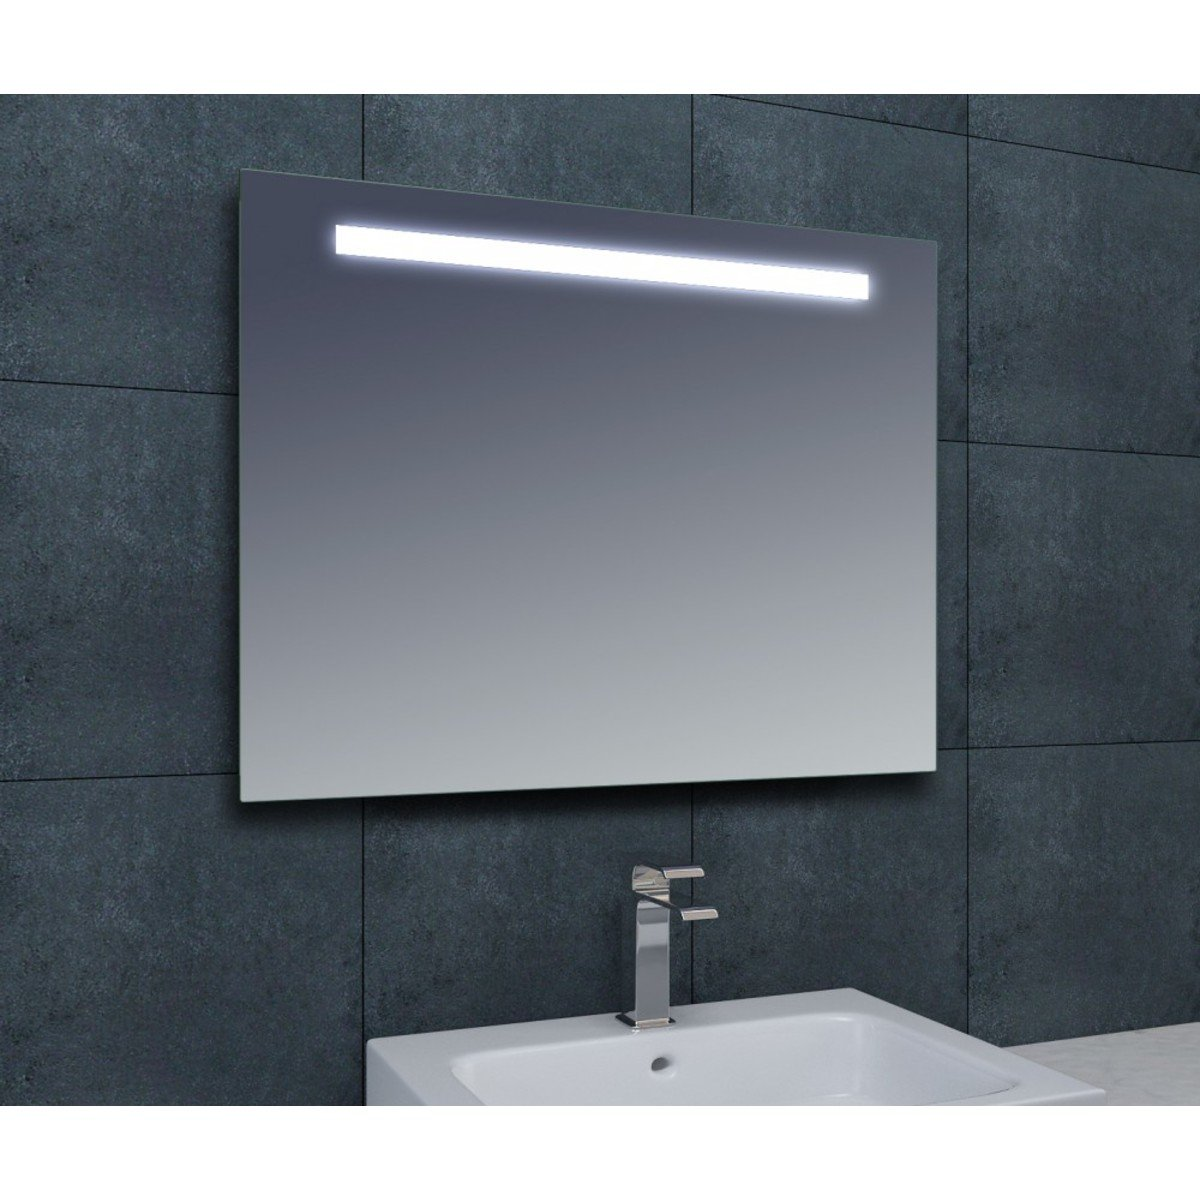 wiesbaden line miroir avec clairage 140x80cm avec. Black Bedroom Furniture Sets. Home Design Ideas